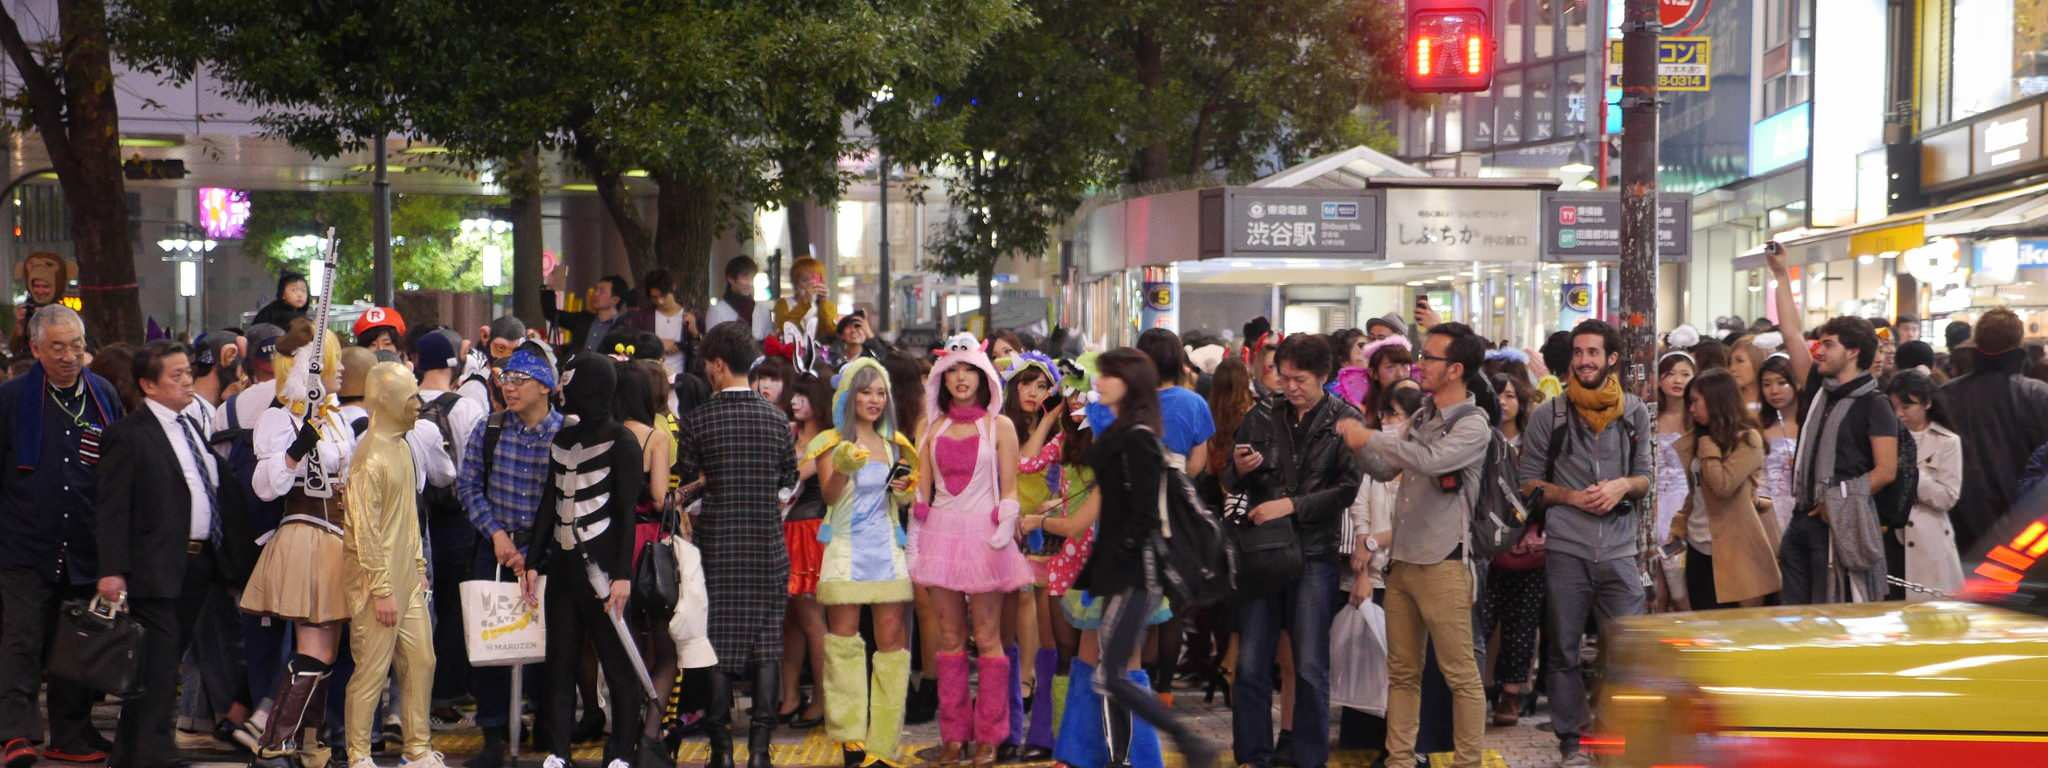 Halloween front crowd view in Shibuya streets